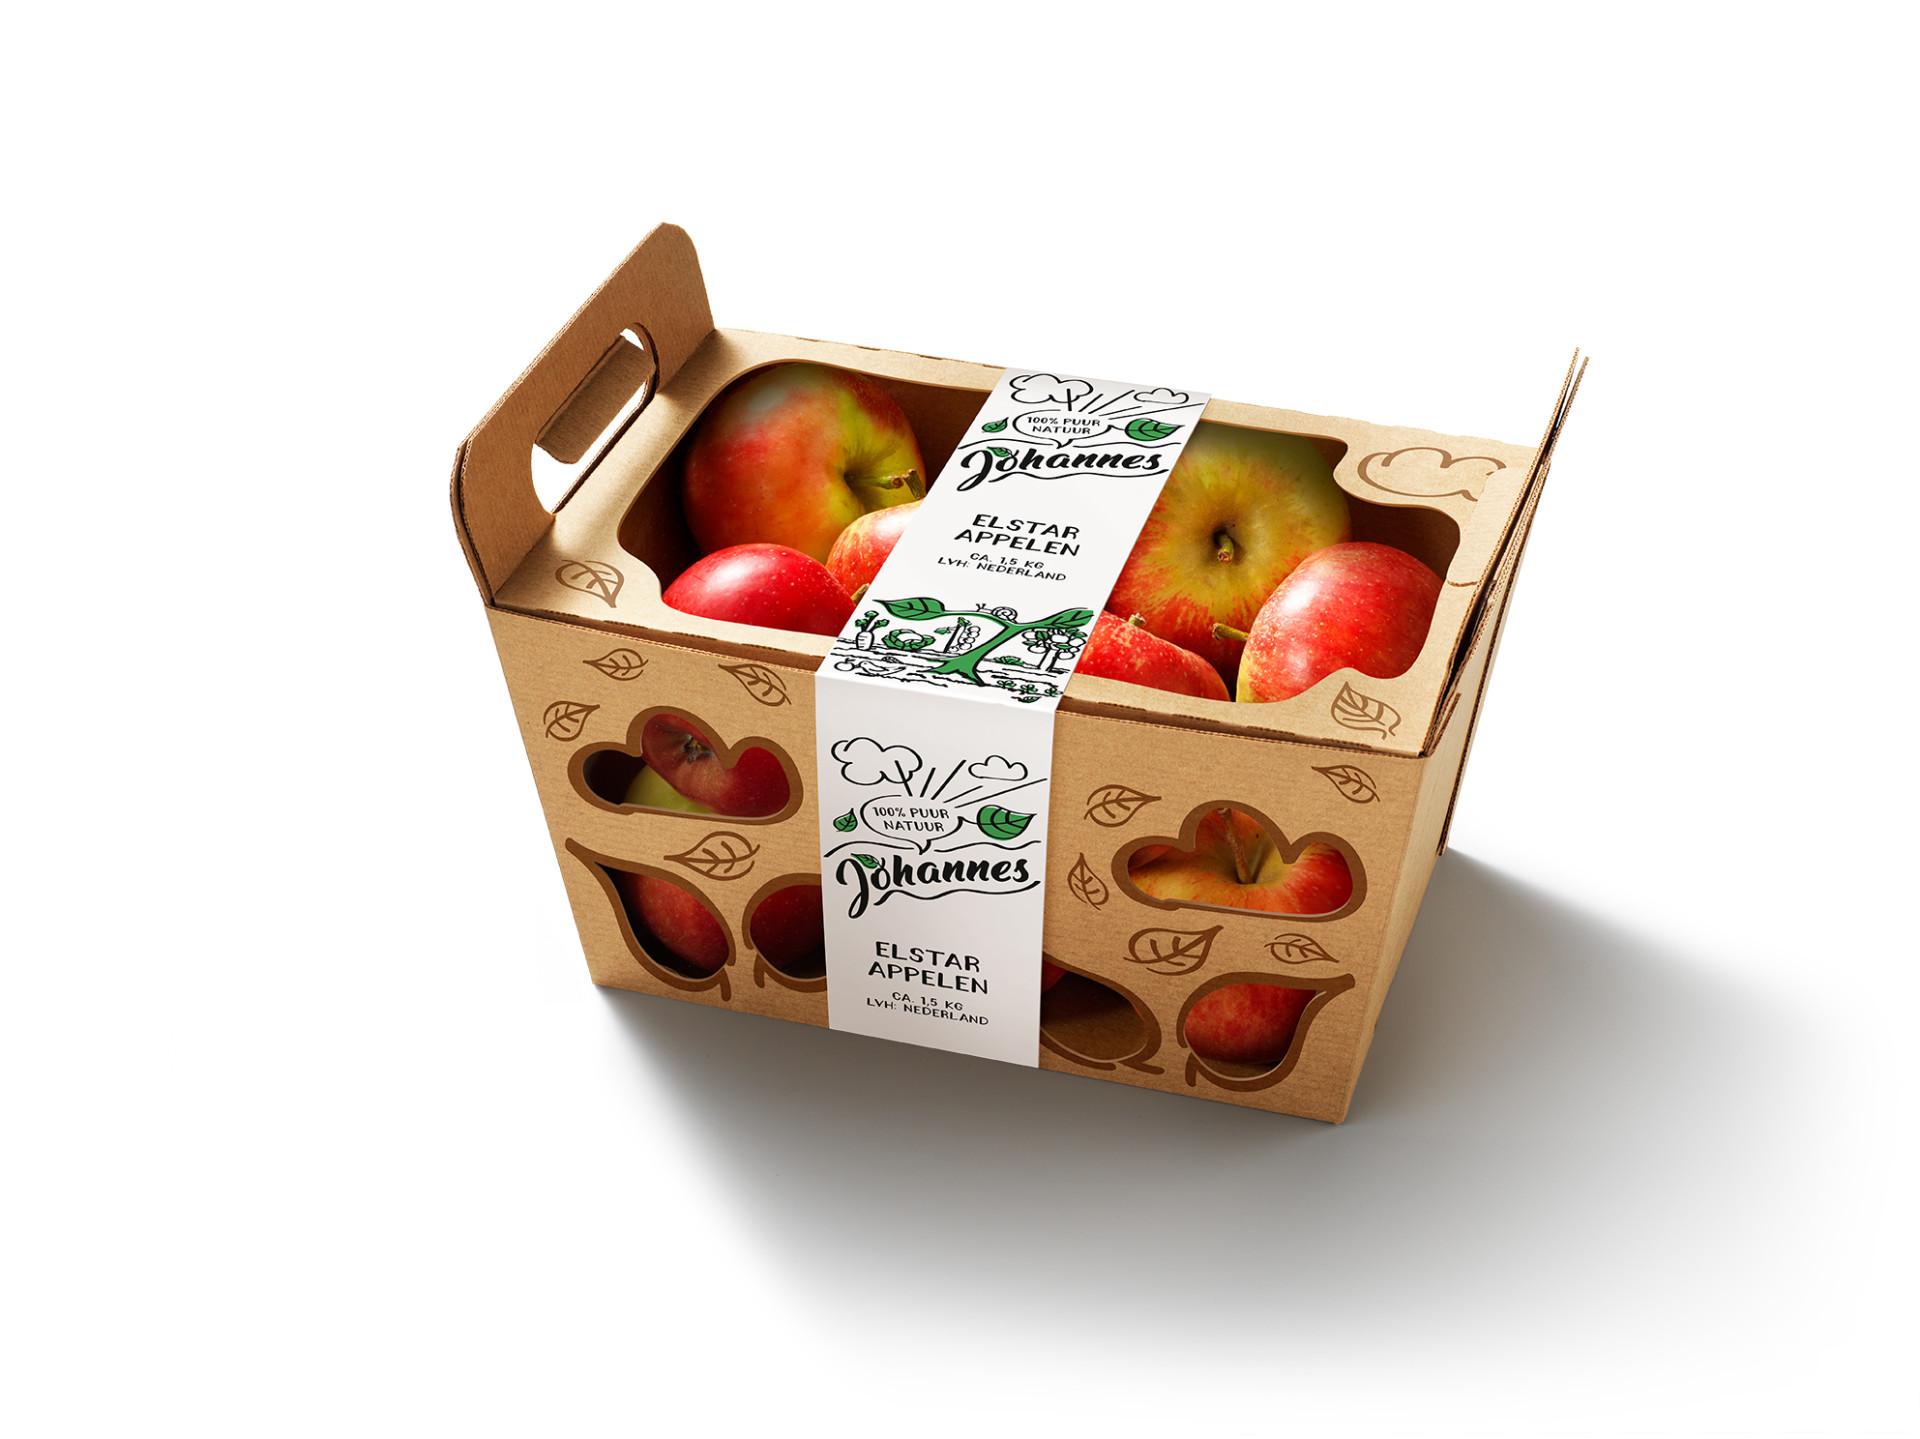 Carton-tray-packaged-apples-0E0AF63752-1